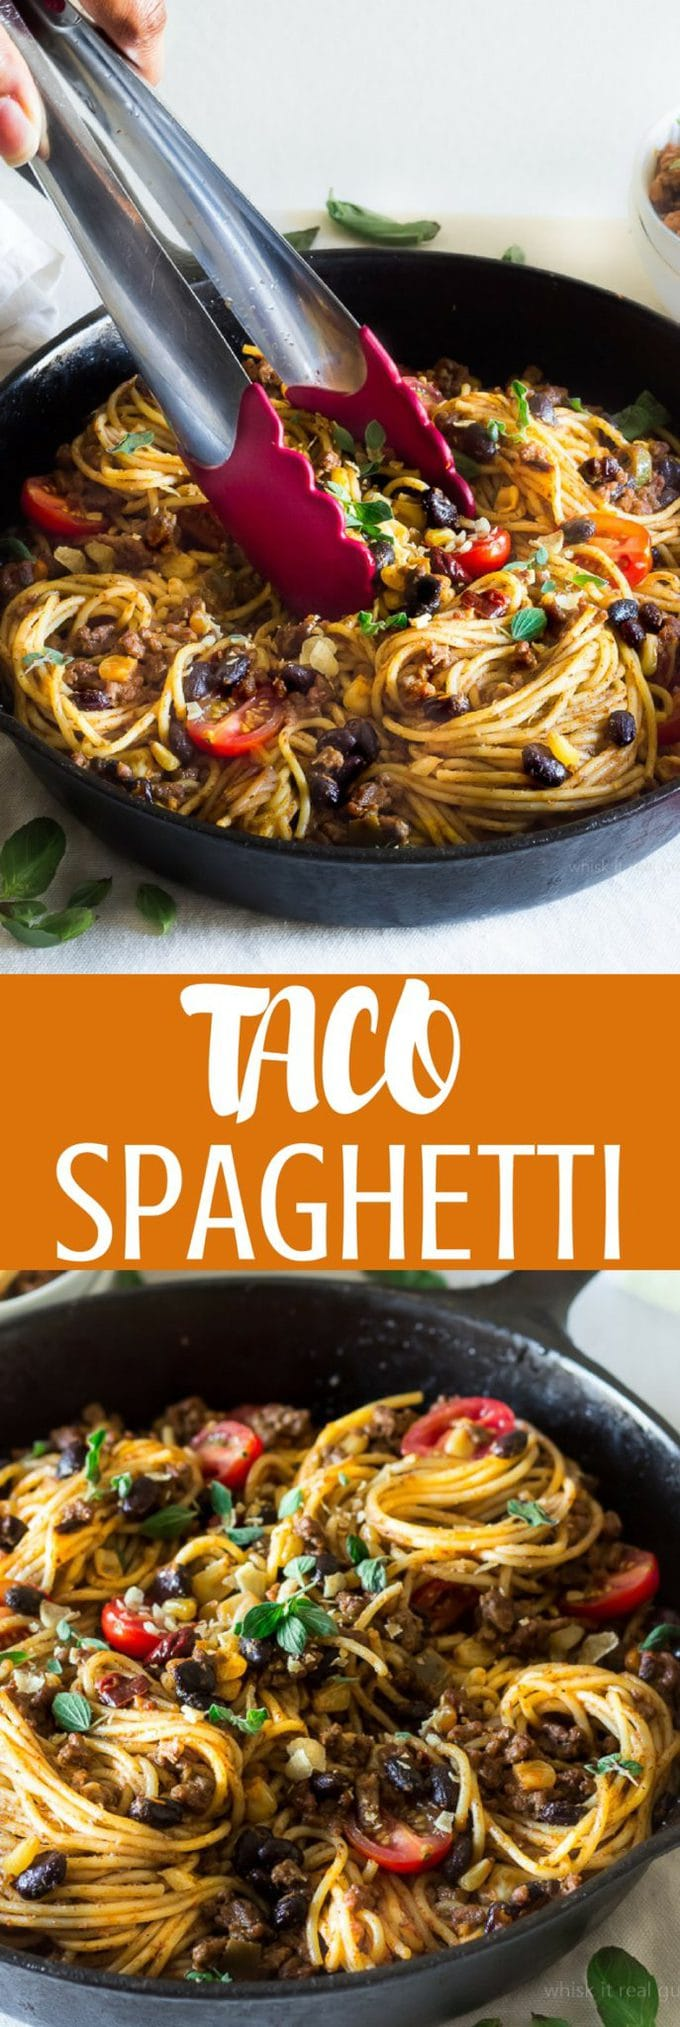 My taco spaghetti is filled with all of my favorite ingredients: Barilla pasta, taco seasoning, ground beef, jalapeno, chipotle, adobo sauce, onions, salsa, black beans, corn, grape tomatoes and fresh herbs. This quick and easy pasta is full of flavor and not too spicy, which makes it kid friendly and perfect for busy weeknights!